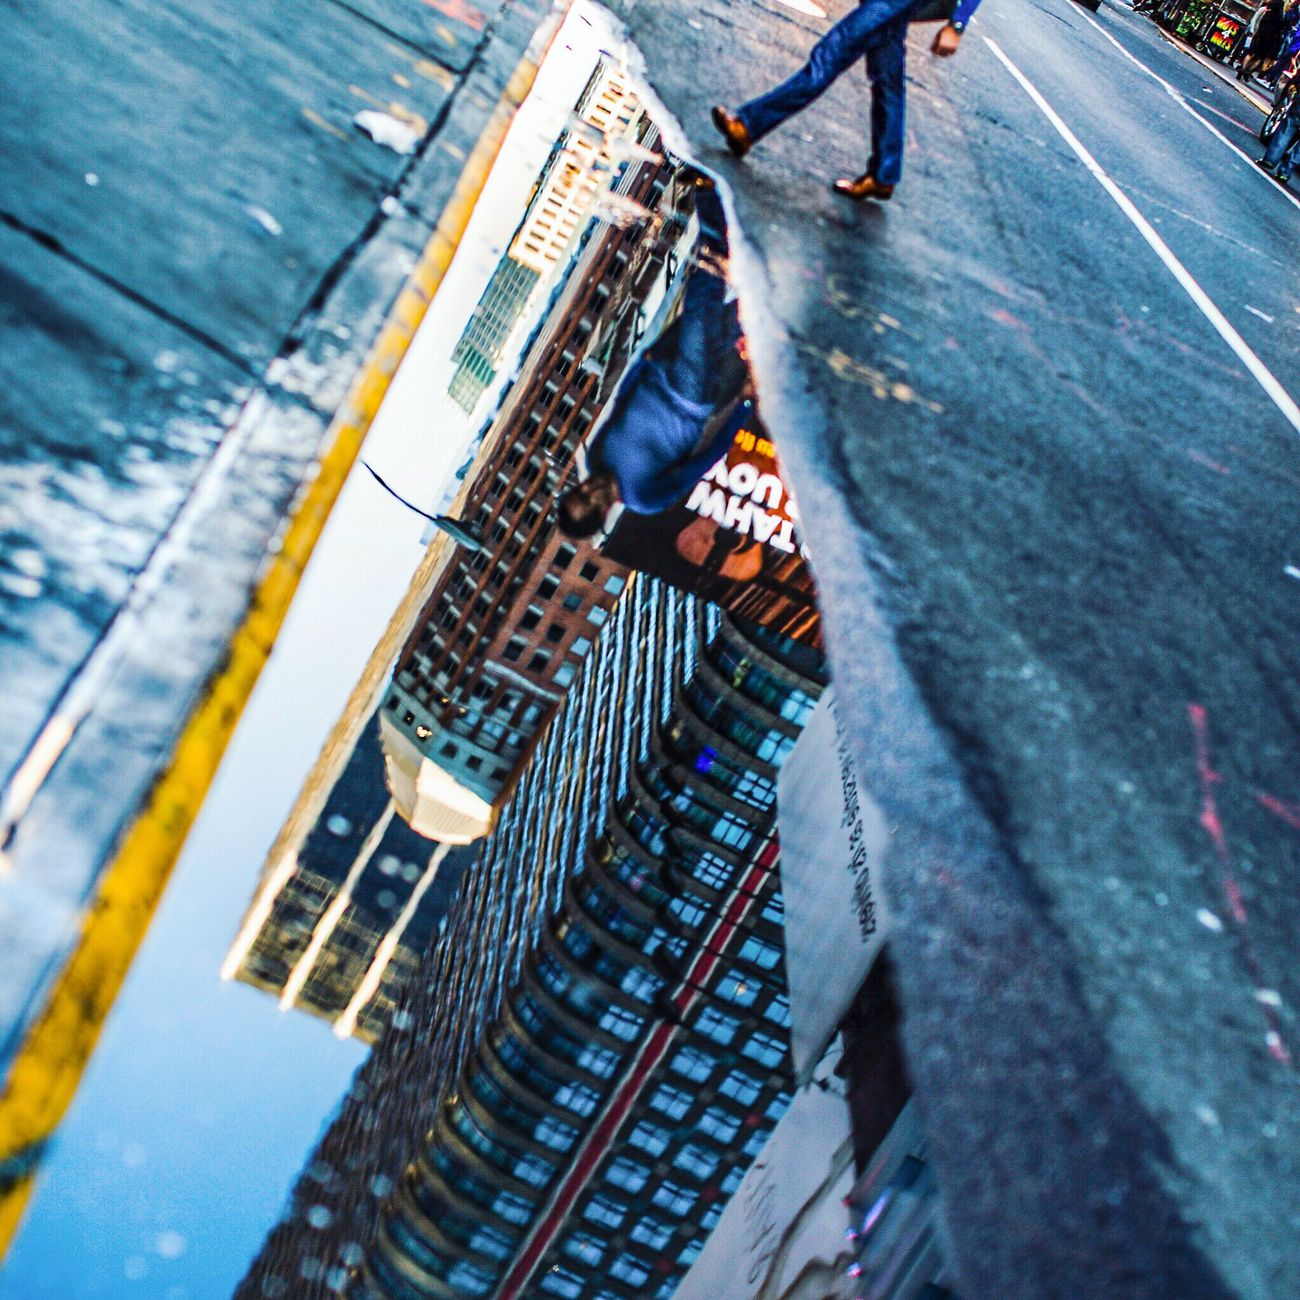 New York Reflections Vs II High Angle View Low Section Men Human Leg Two People Only Men Human Body Part Day People Adults Only Adult Indoors  Real People City Close-up Supermarket The Photojournalist - 2017 EyeEm Awards The Street Photographer - 2017 EyeEm Awards Reflection Streetphotography City Life